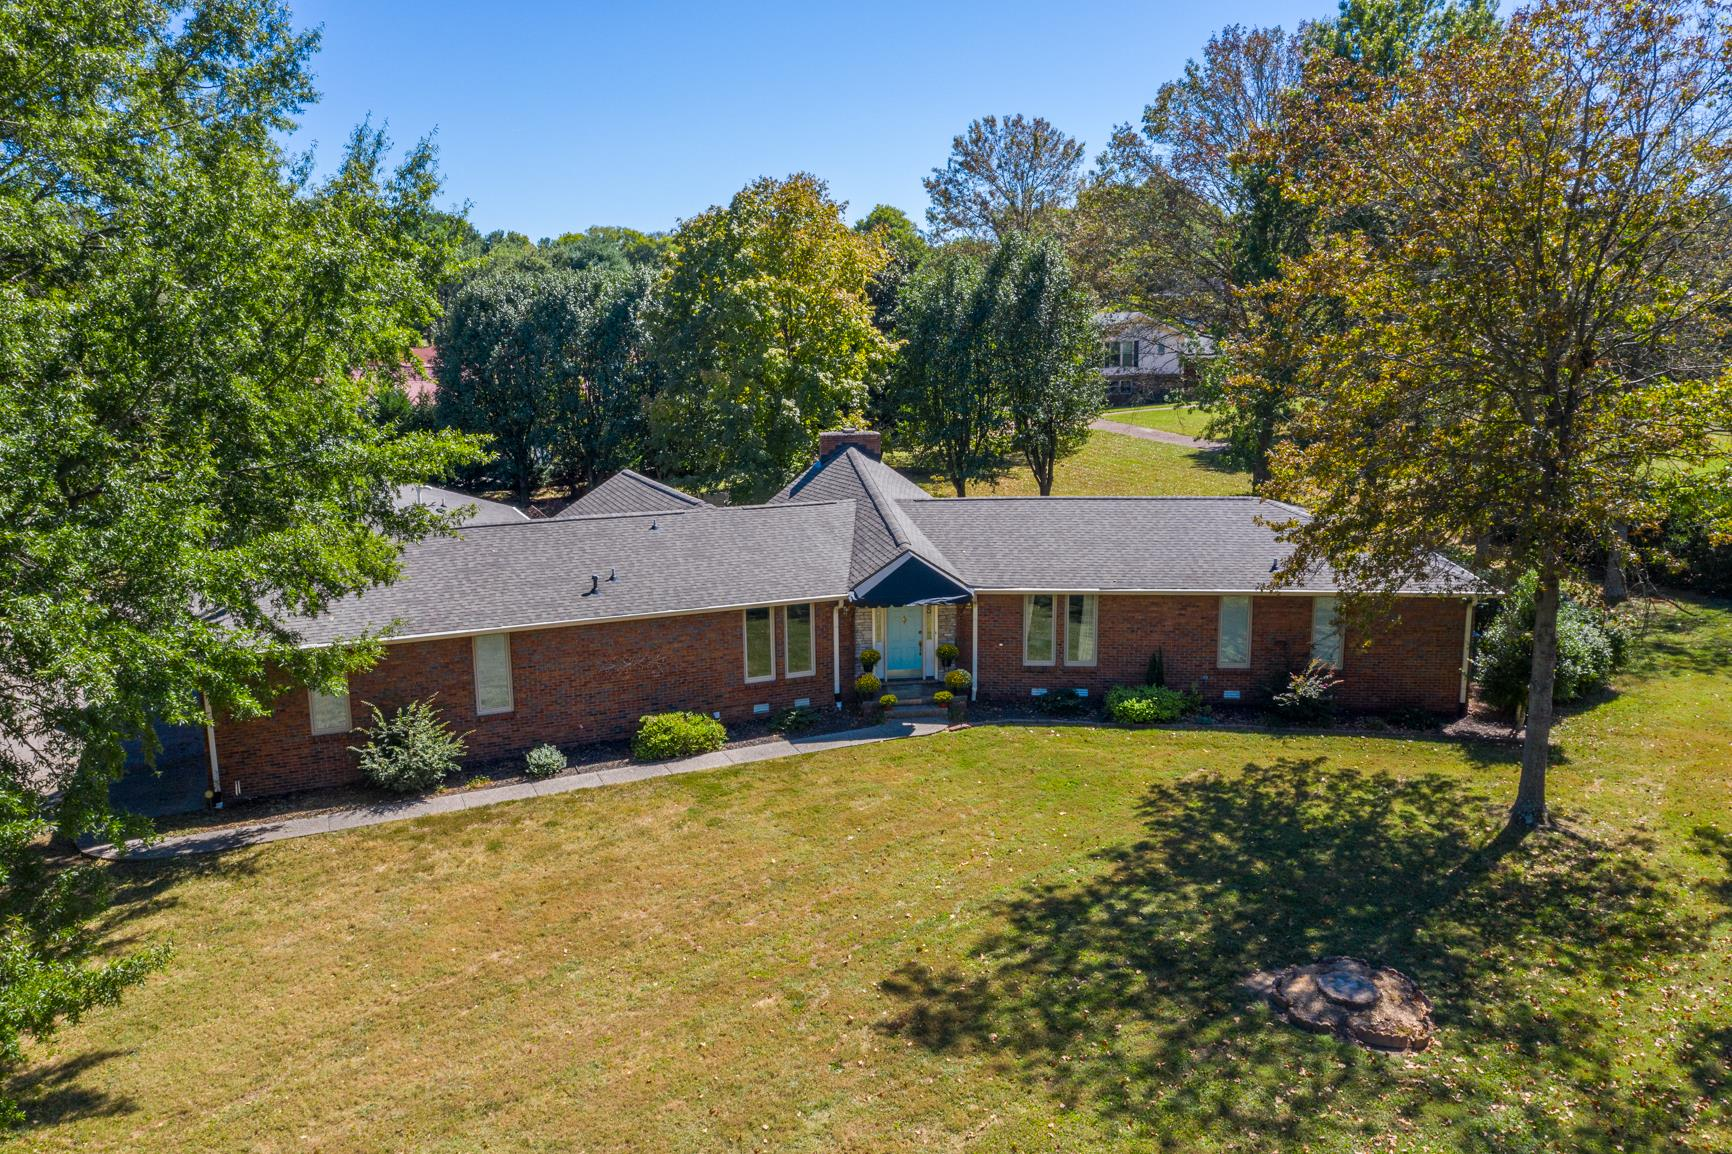 416 Rolling Mill Rd, Old Hickory, TN 37138 - Old Hickory, TN real estate listing